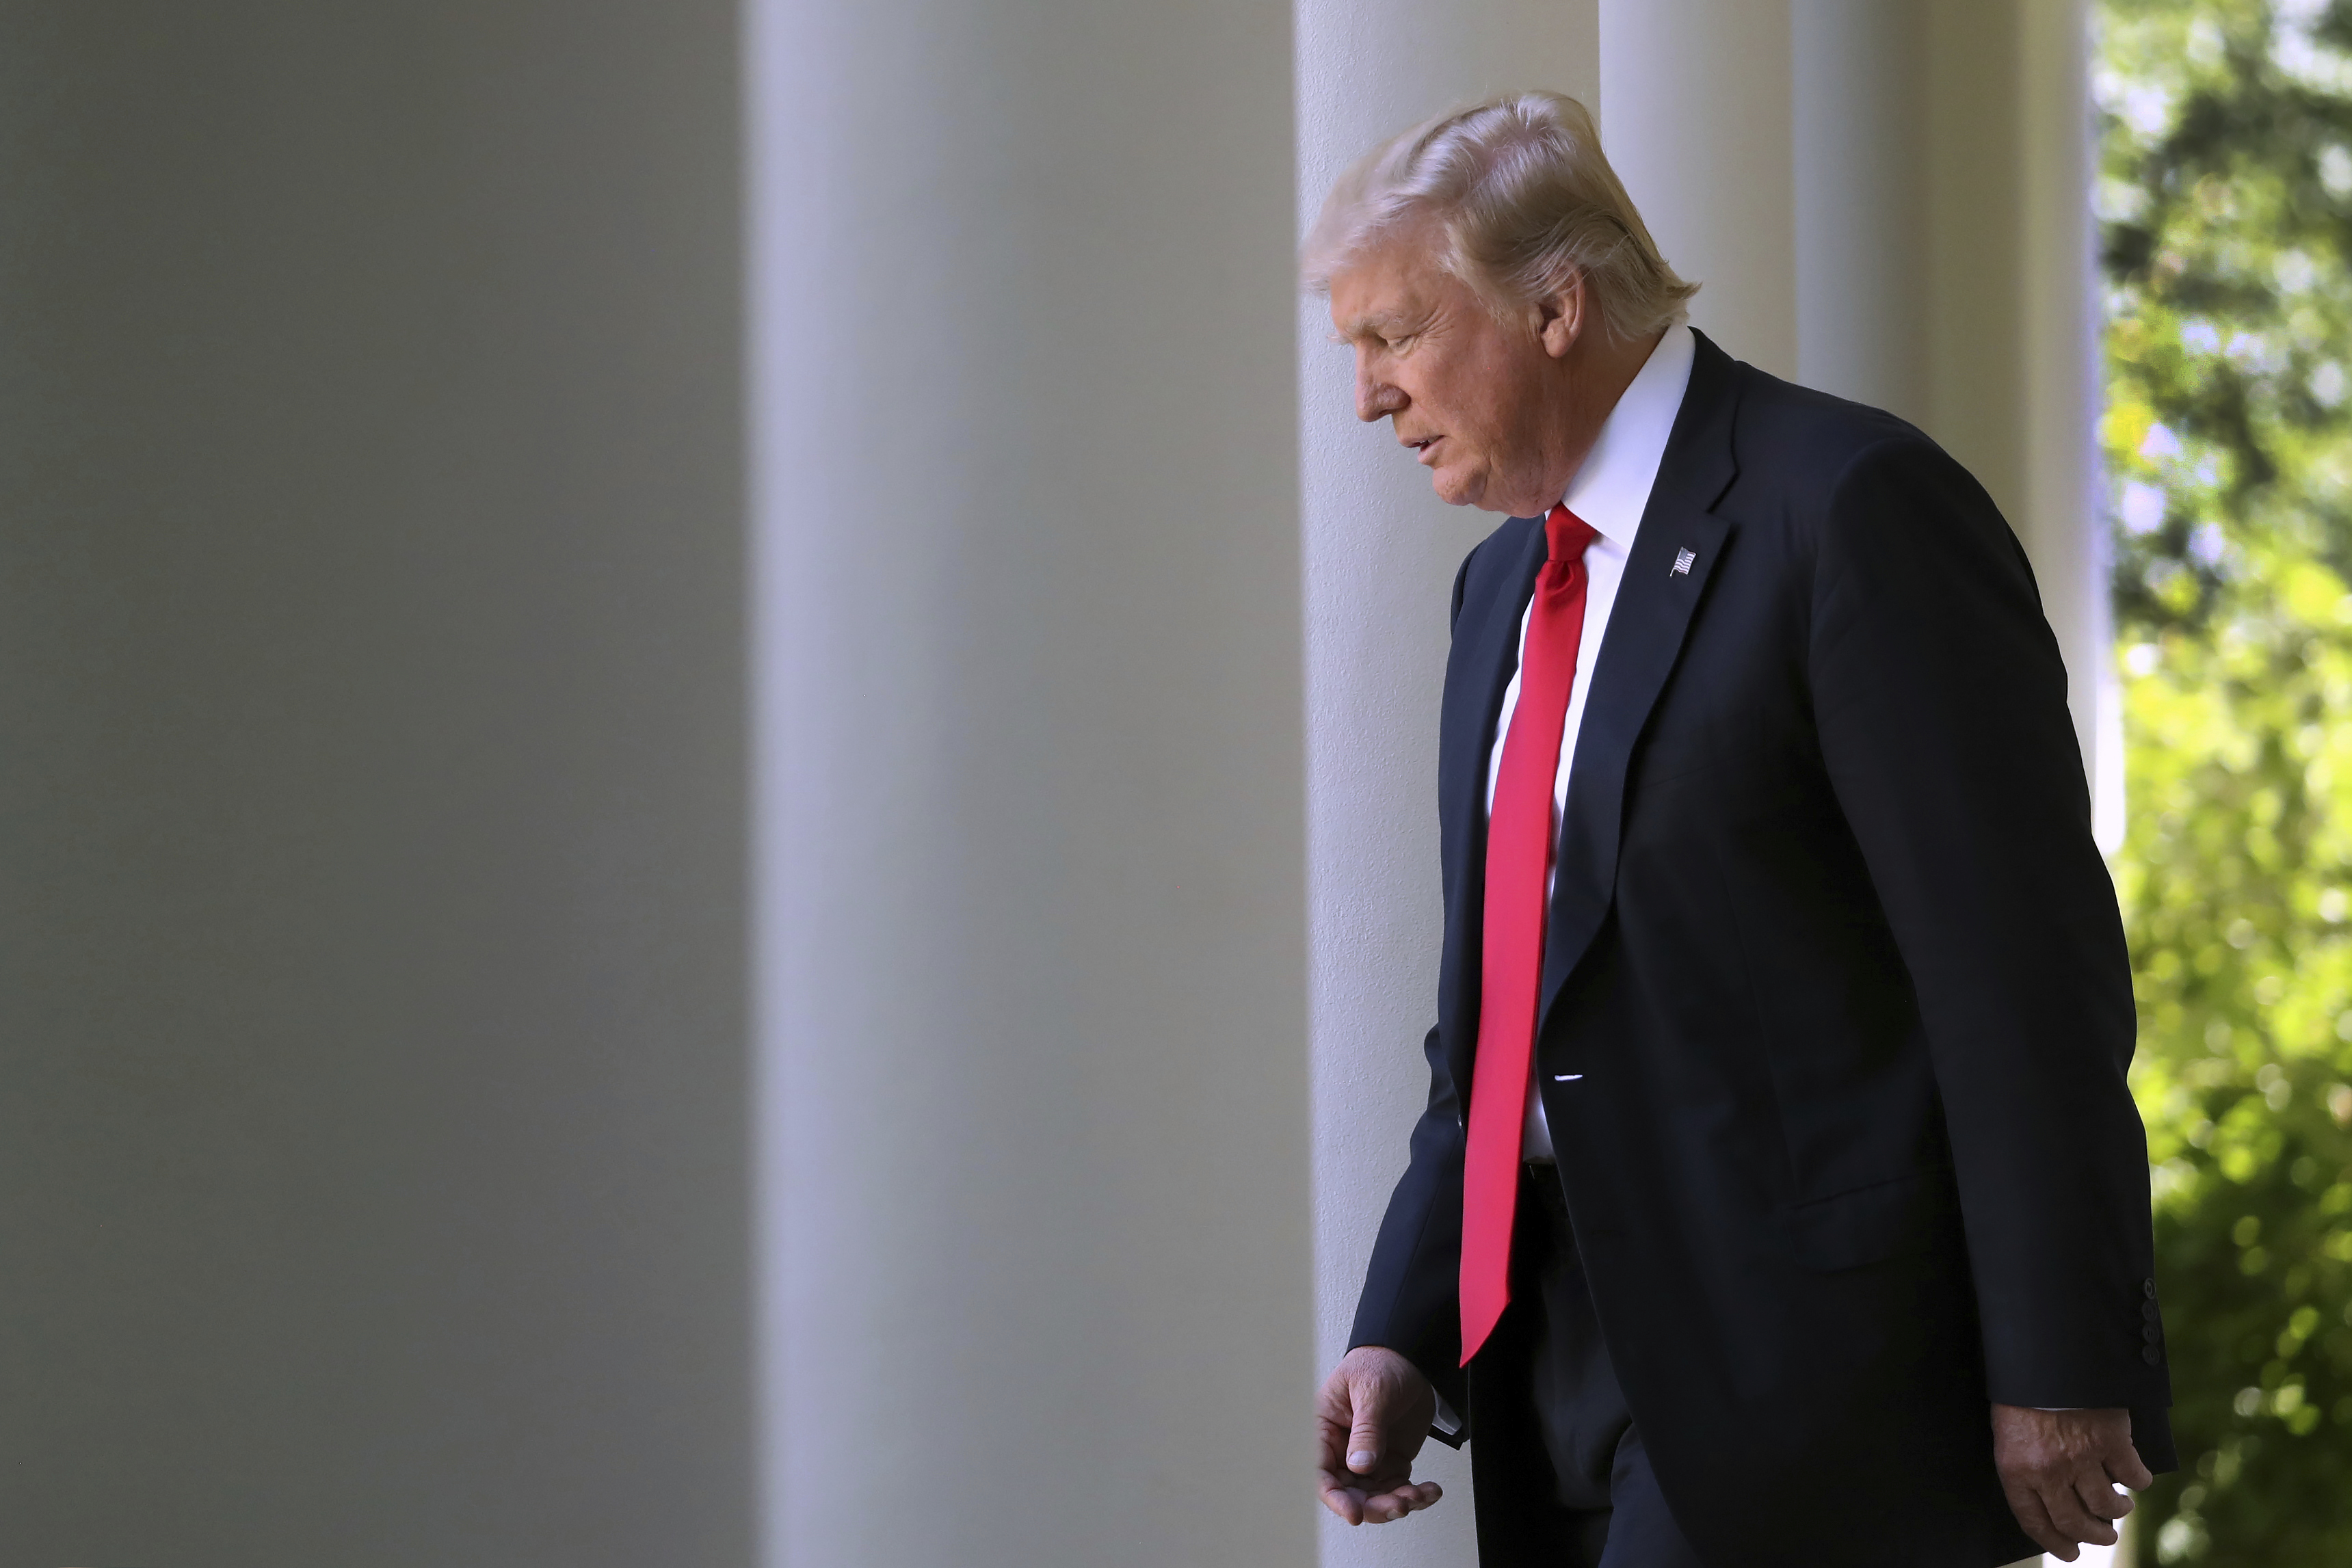 Trumps Climate War-4 FILE - In this June 1, 2017 file photo, President Donald Trump arrives in the Rose Garden of the White House in Washington, to speak about the US role in the Paris climate change accord. Trump's recent decision to pull the United States from the international climate deal reached in Paris was but the latest in a rapid-fire series of moves that would weaken or dismantle federal initiatives to reduce carbon emissions, which scientists say are heating the planet to levels that could have disastrous consequences. (AP Photo/Andrew Harnik)